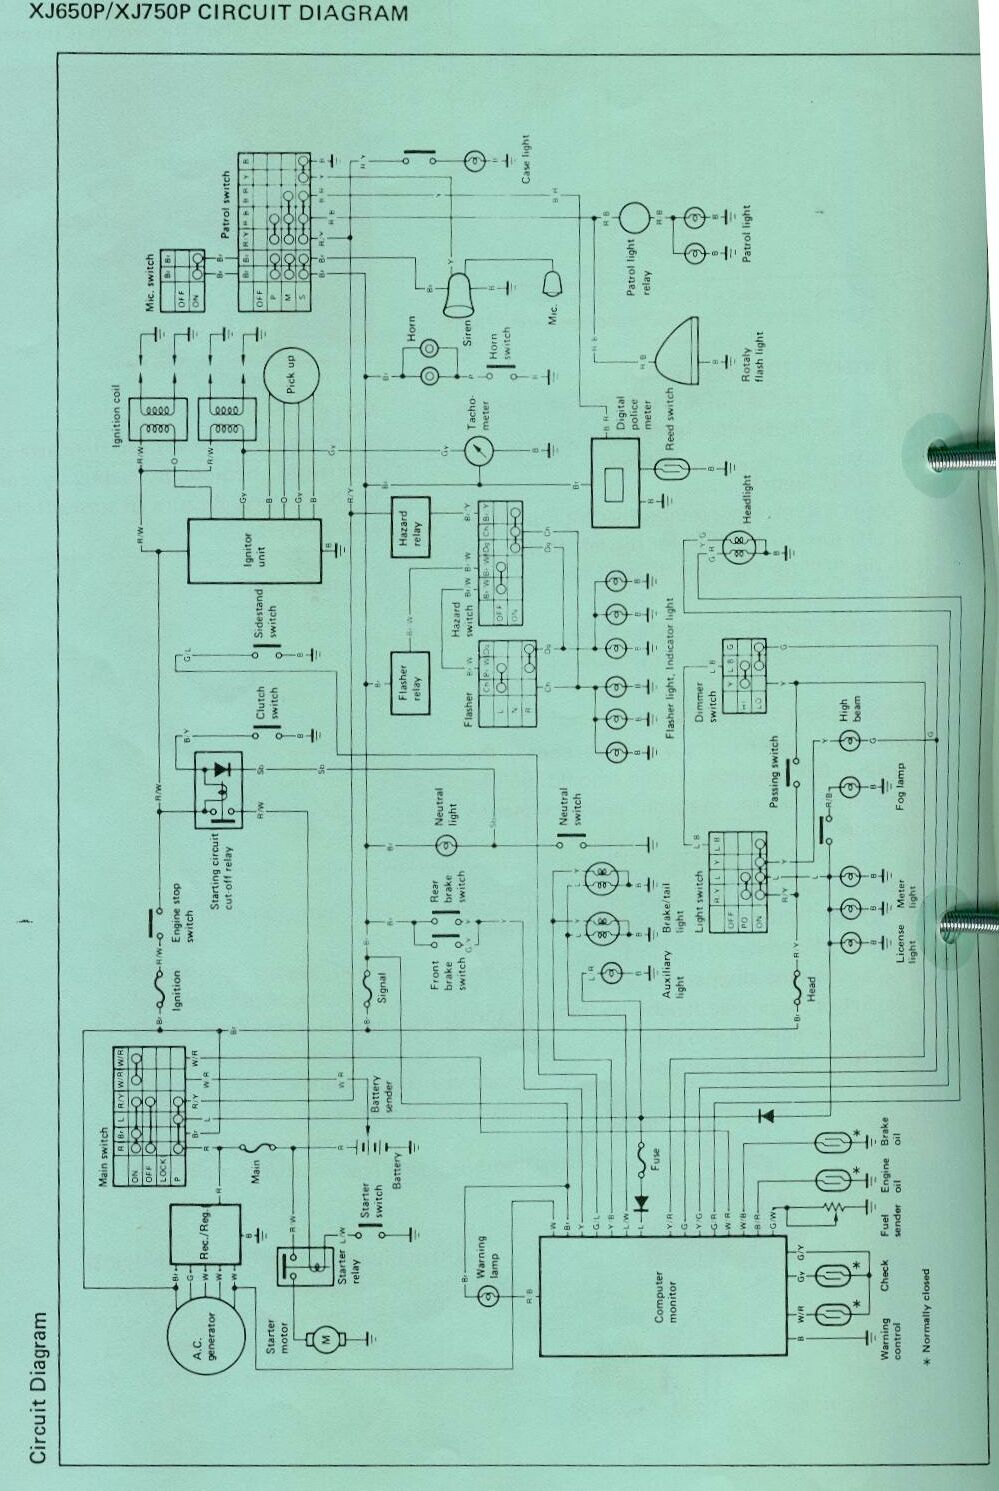 d12a Xj Wiring Diagram on hvac diagrams, engine diagrams, electronic circuit diagrams, led circuit diagrams, smart car diagrams, motor diagrams, transformer diagrams, battery diagrams, series and parallel circuits diagrams, electrical diagrams, gmc fuse box diagrams, honda motorcycle repair diagrams, internet of things diagrams, pinout diagrams, sincgars radio configurations diagrams, friendship bracelet diagrams, switch diagrams, lighting diagrams, troubleshooting diagrams,